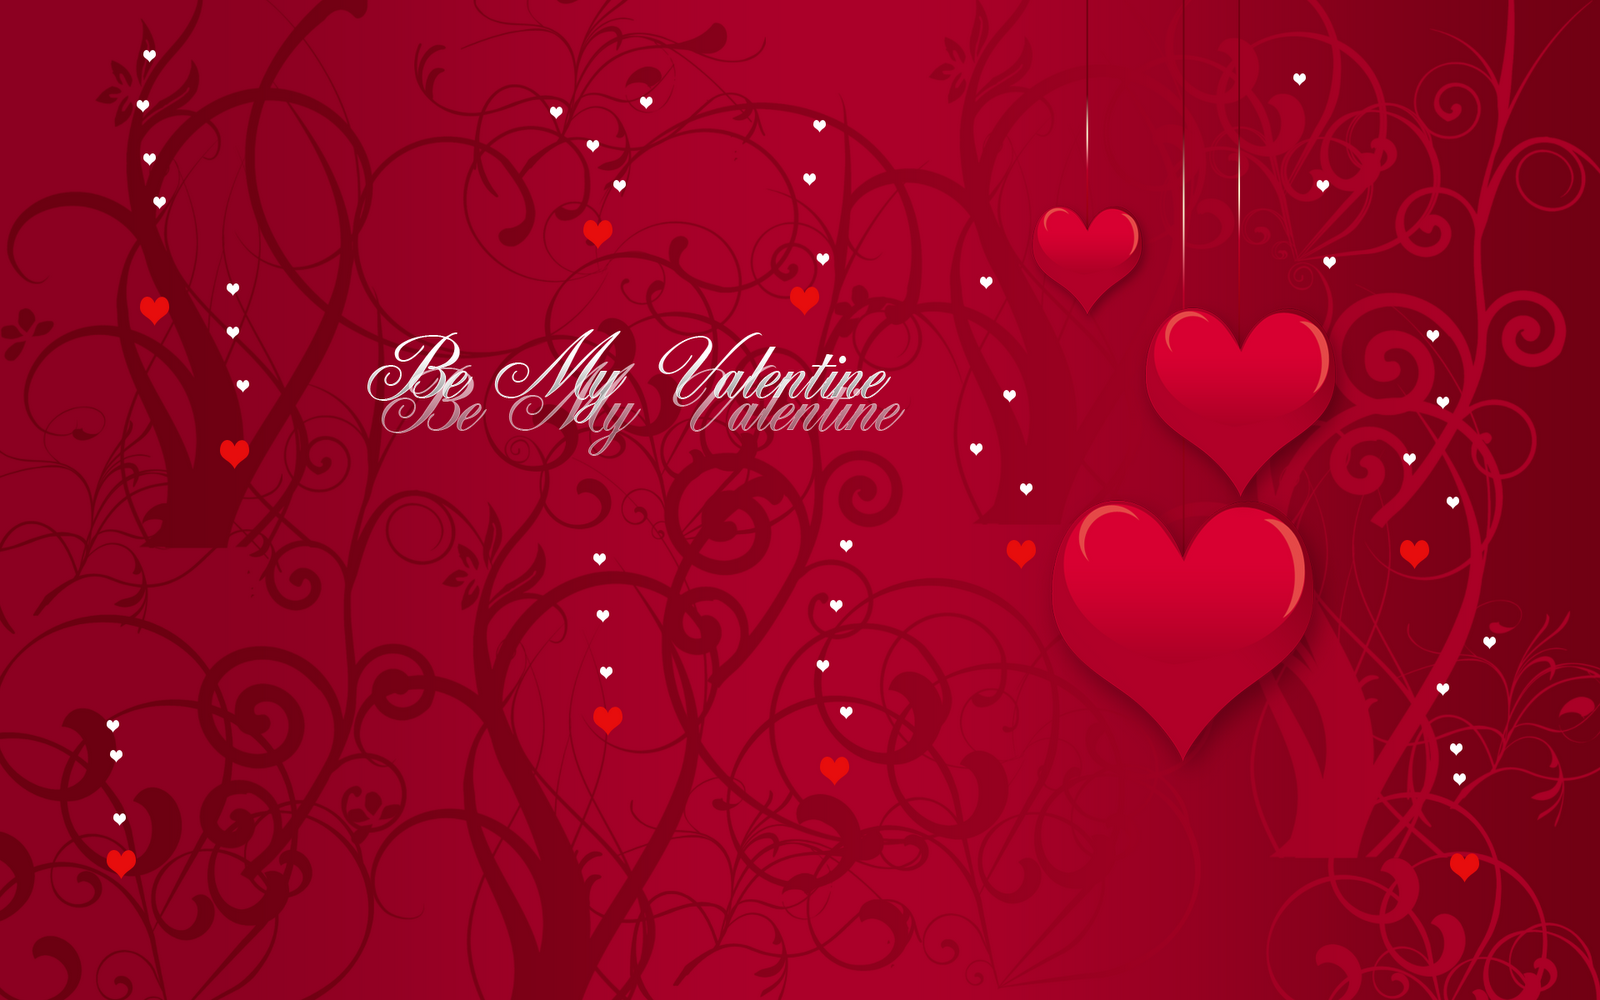 Love Wallpaper Hd Size : Valentine s Day - Love ?HD Wallpapers HD Wallpapers ,Backgrounds ,Photos ,Pictures, Image ,Pc